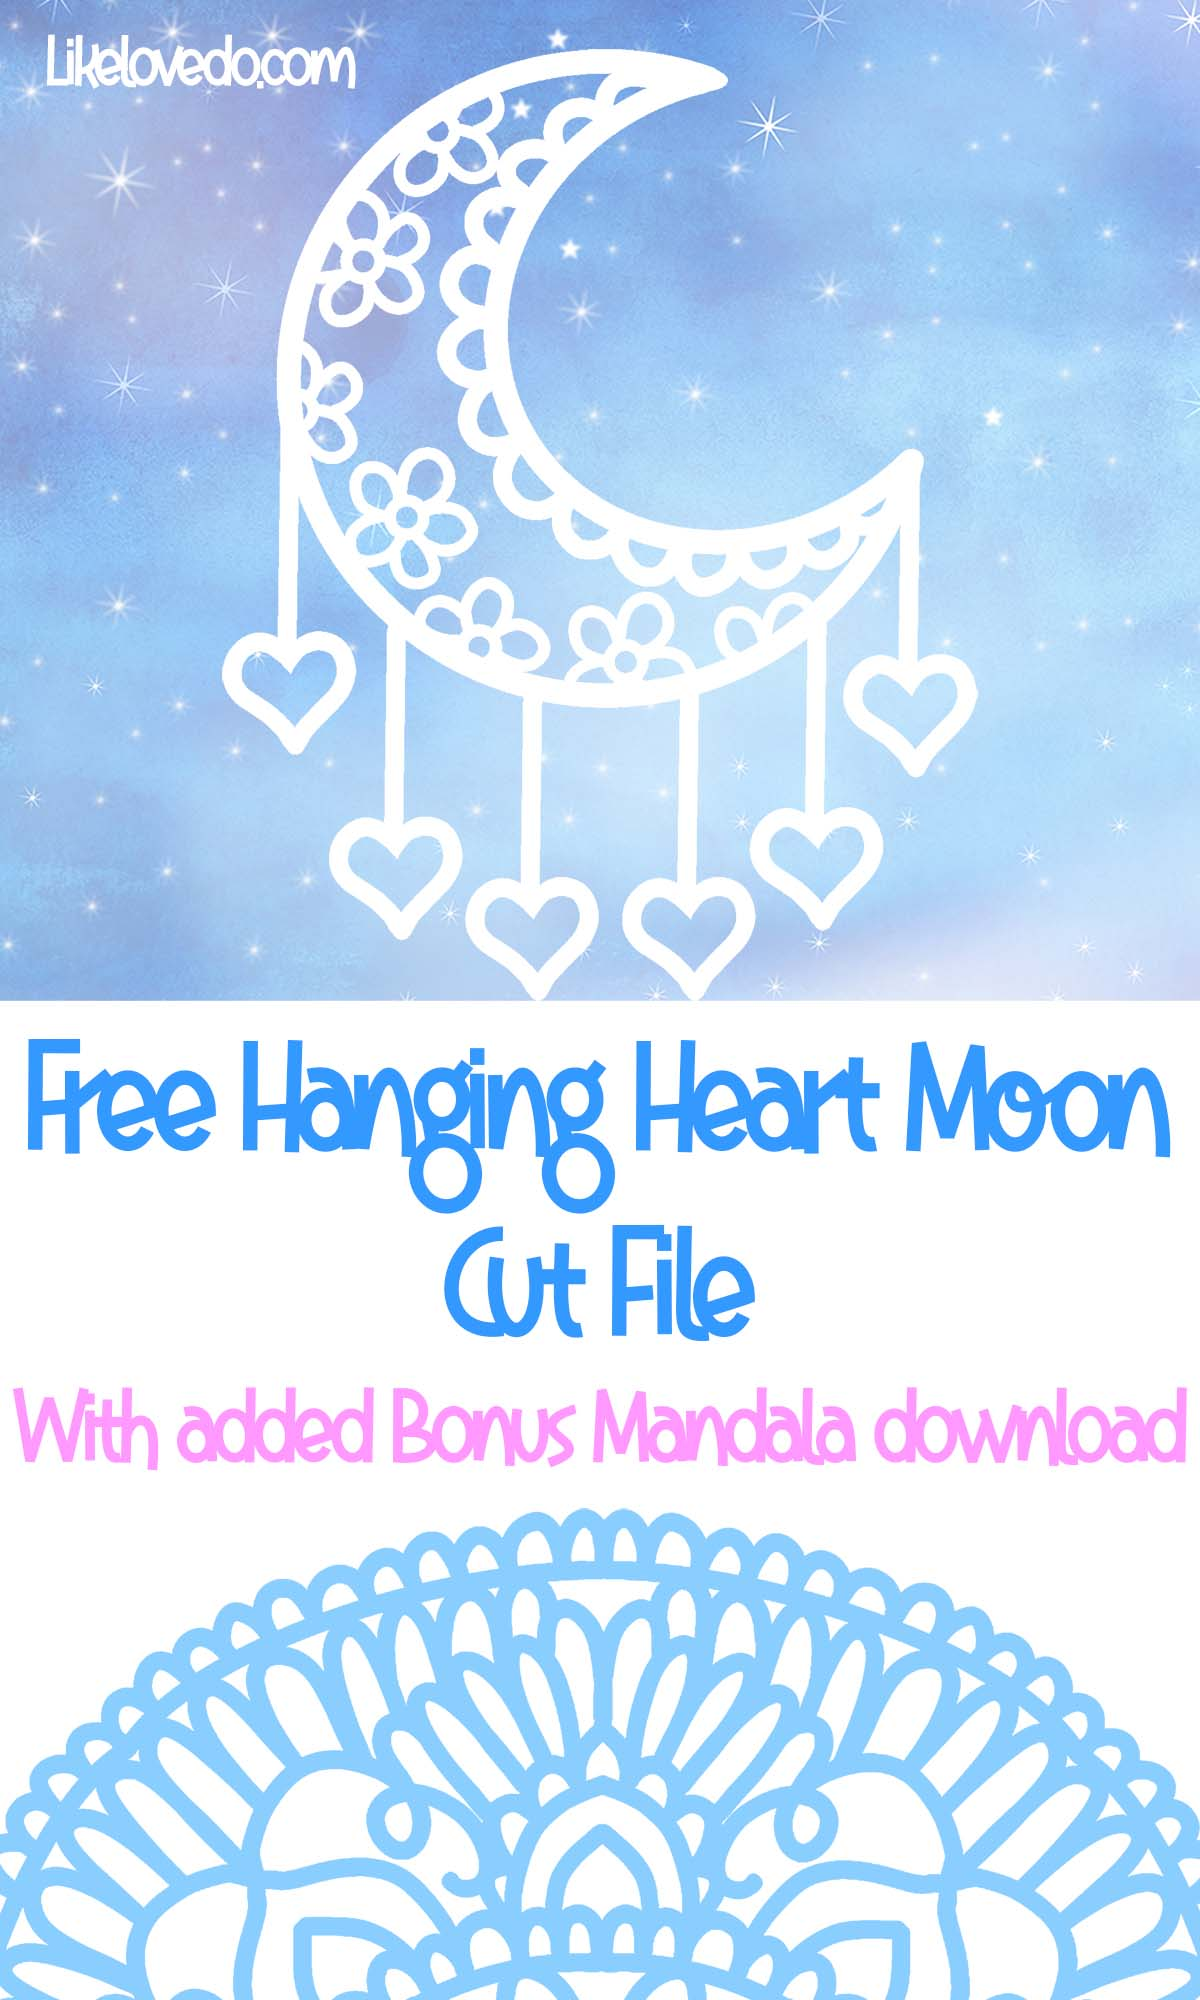 free hanging heart moon cut file and Mandala download for Silhouette